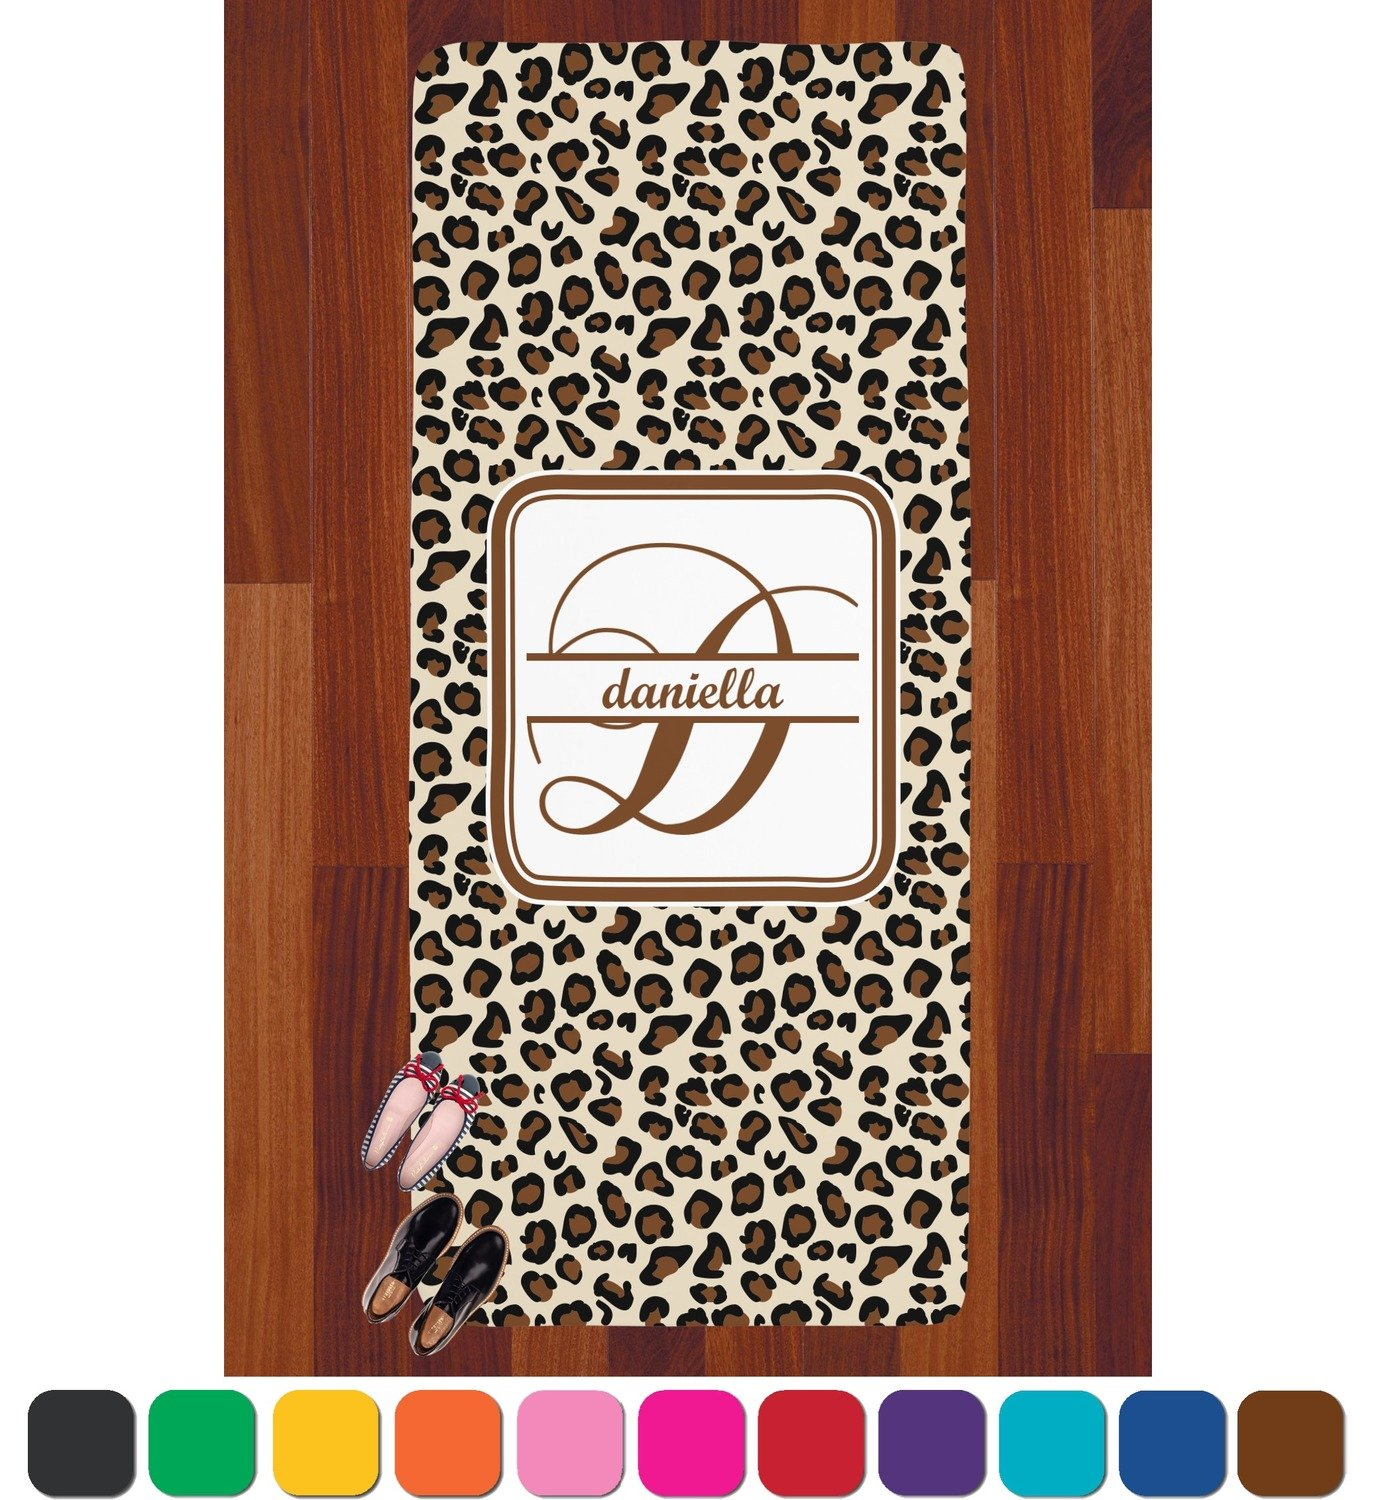 Rnk Shops Leopard Print Runner Rug   3.66'x8' (Personalized) by Rnk Shops